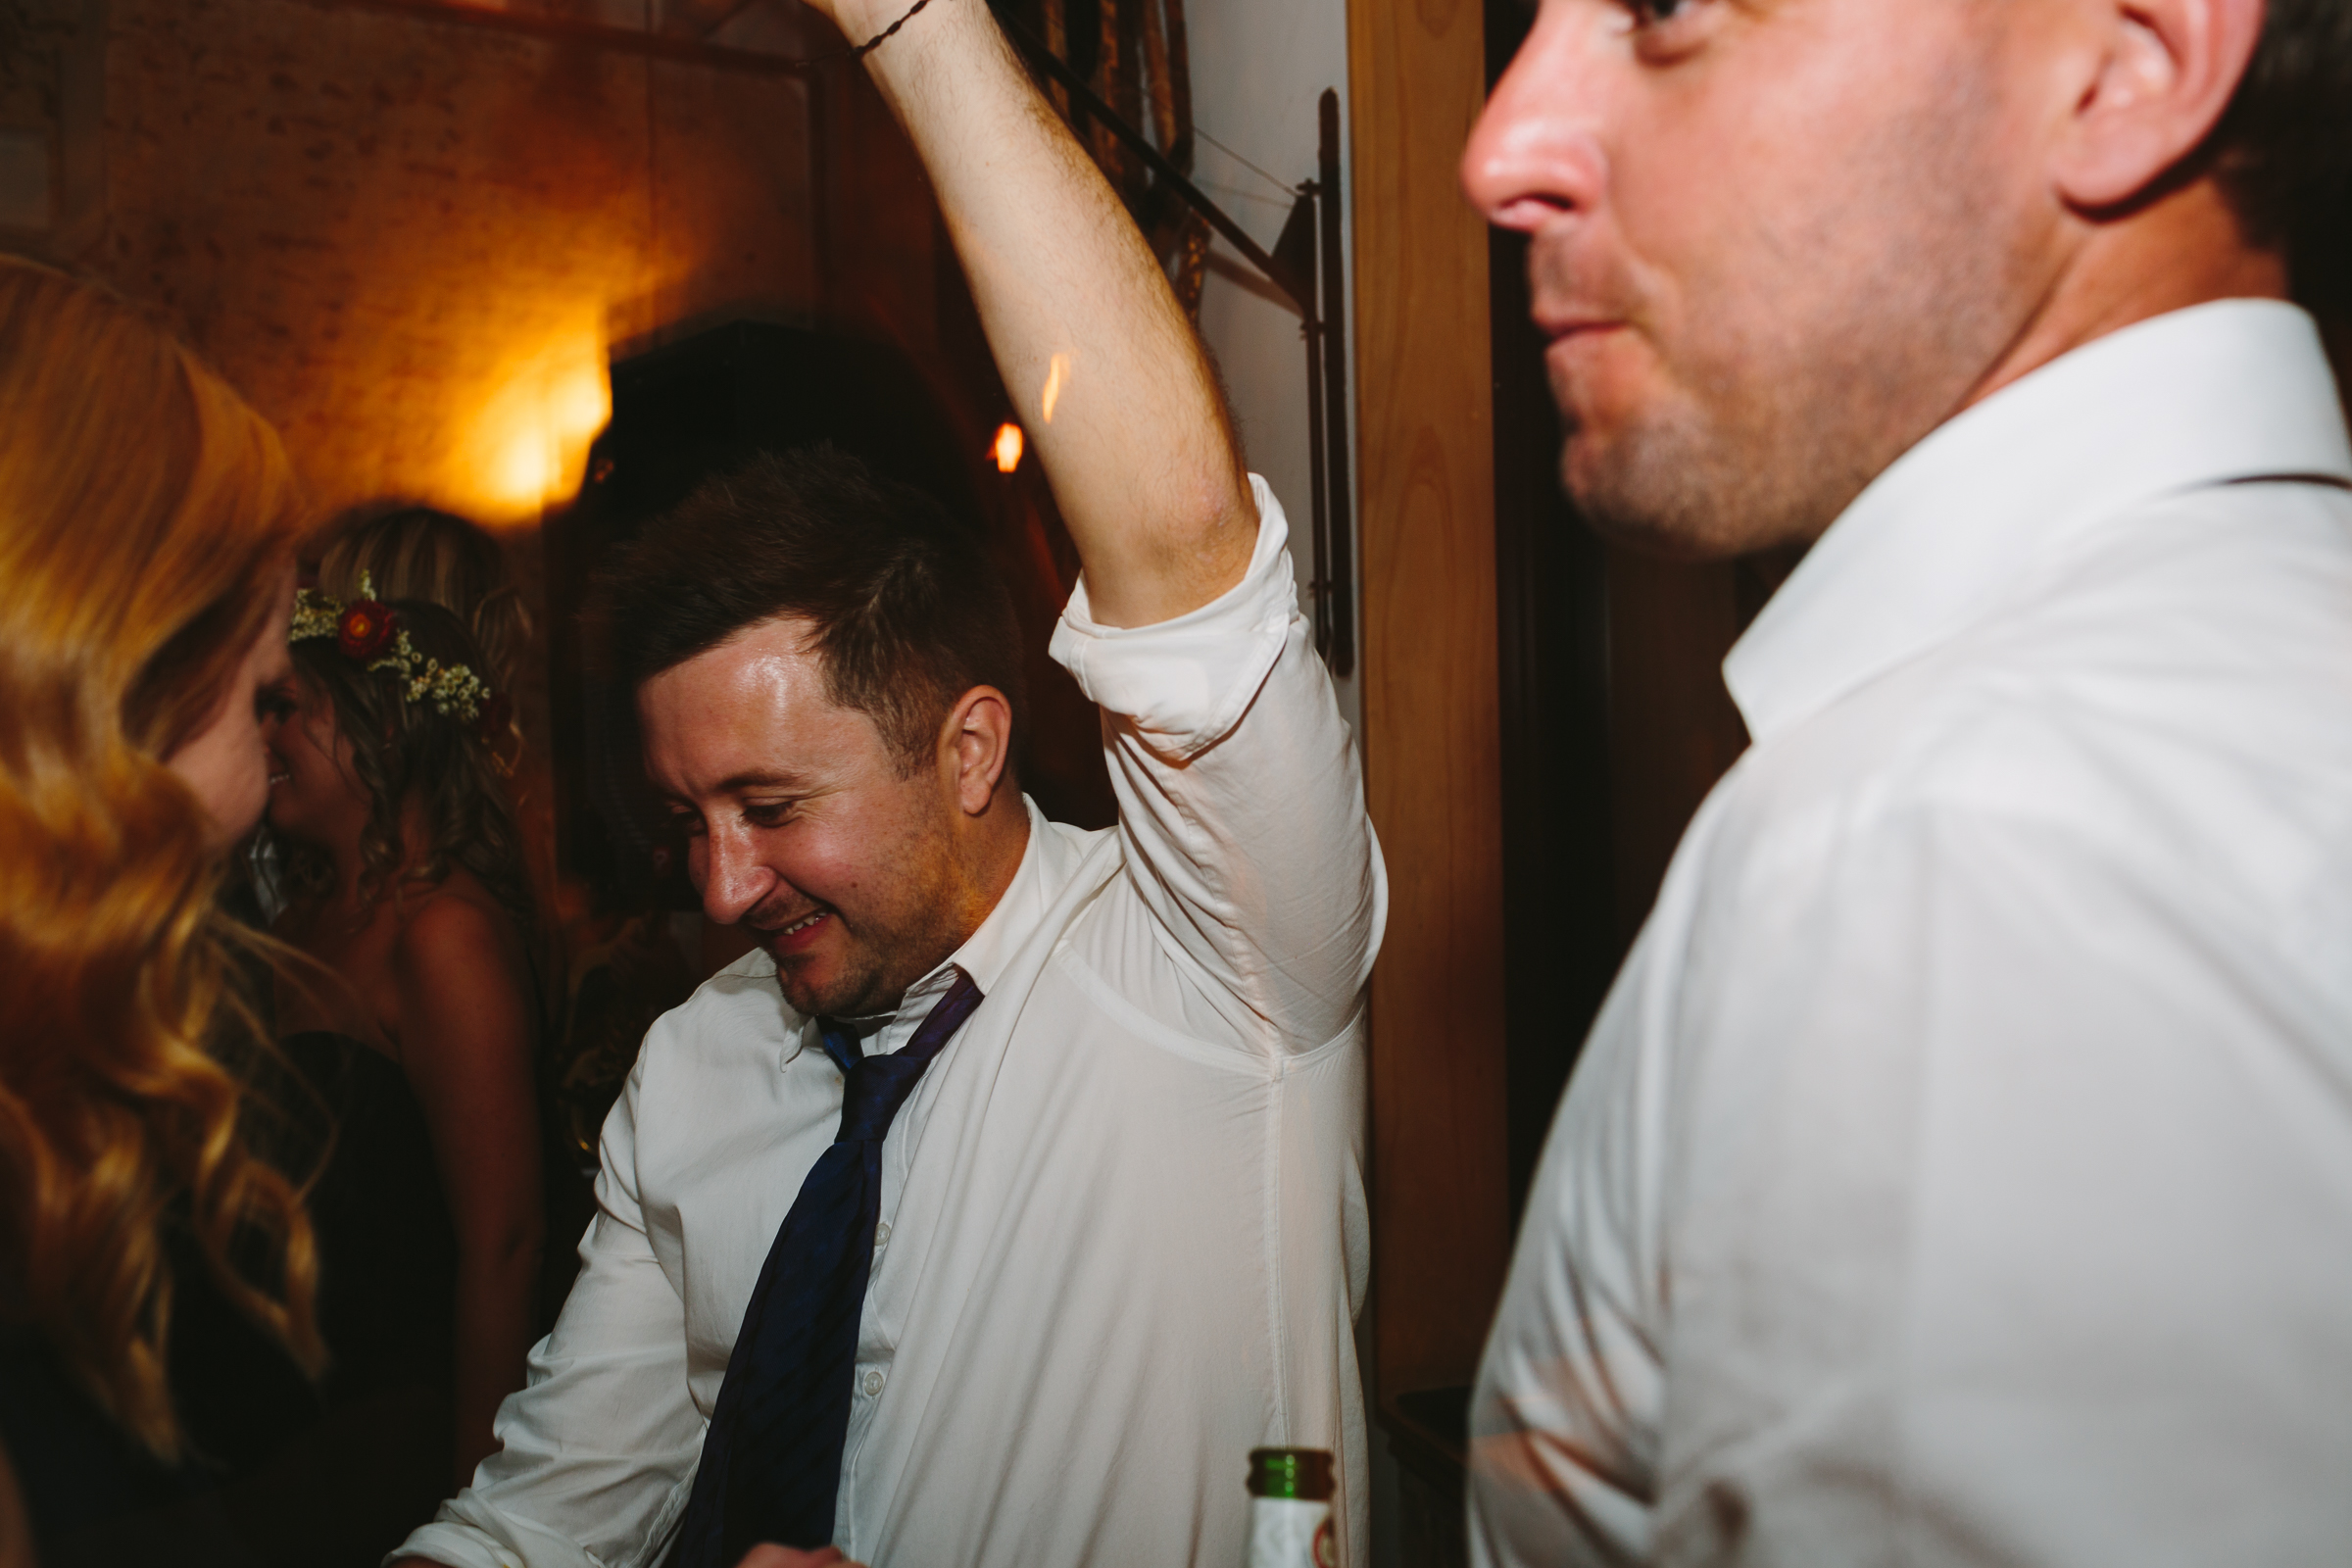 051116_STEPH_MATT_WEDDING_WEB (338 of 572).jpg